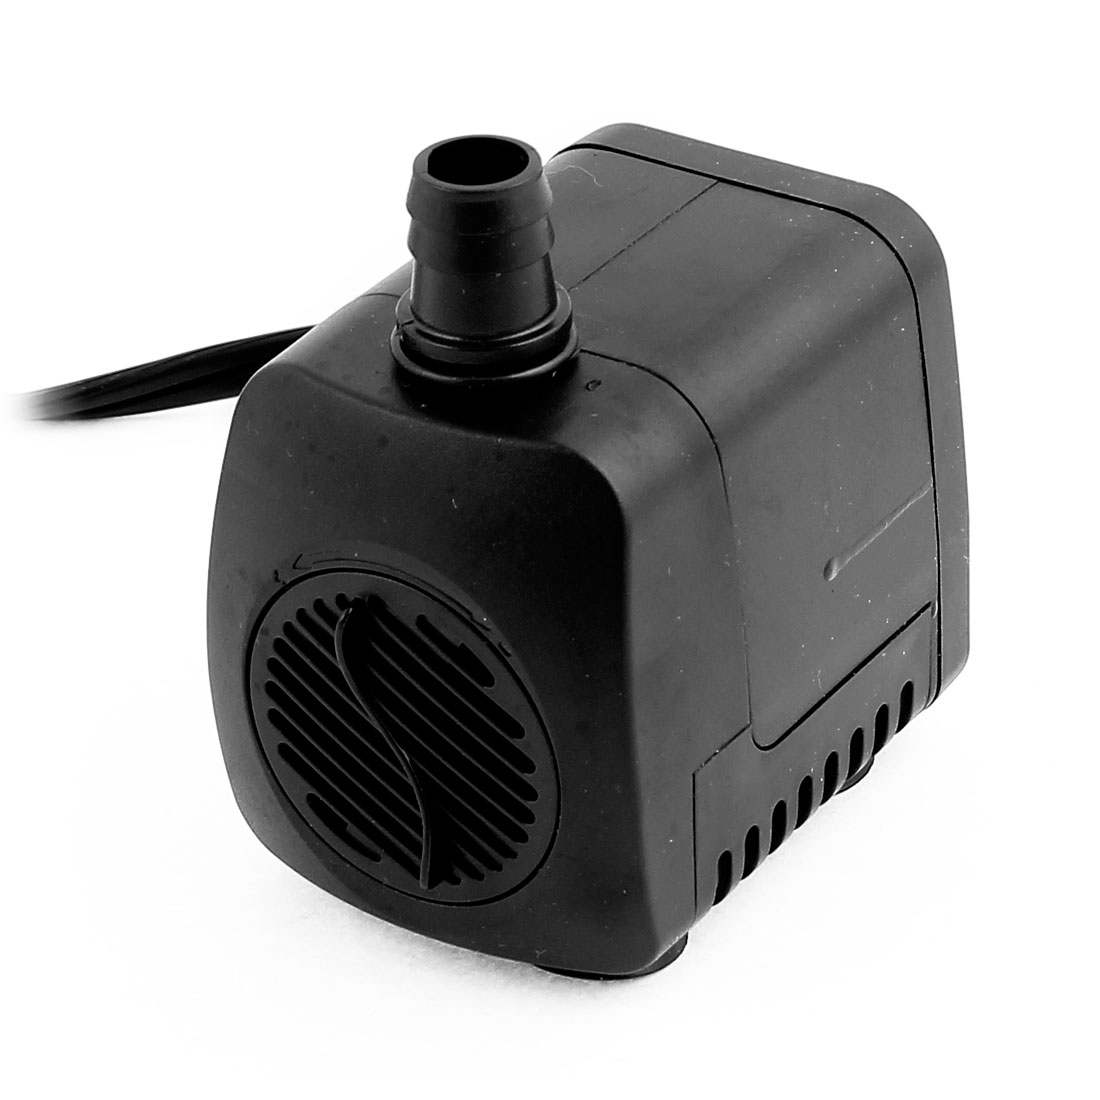 AC 110V-120V US Plug 12W Electric Submersible Water Pump Aquarium Fountain